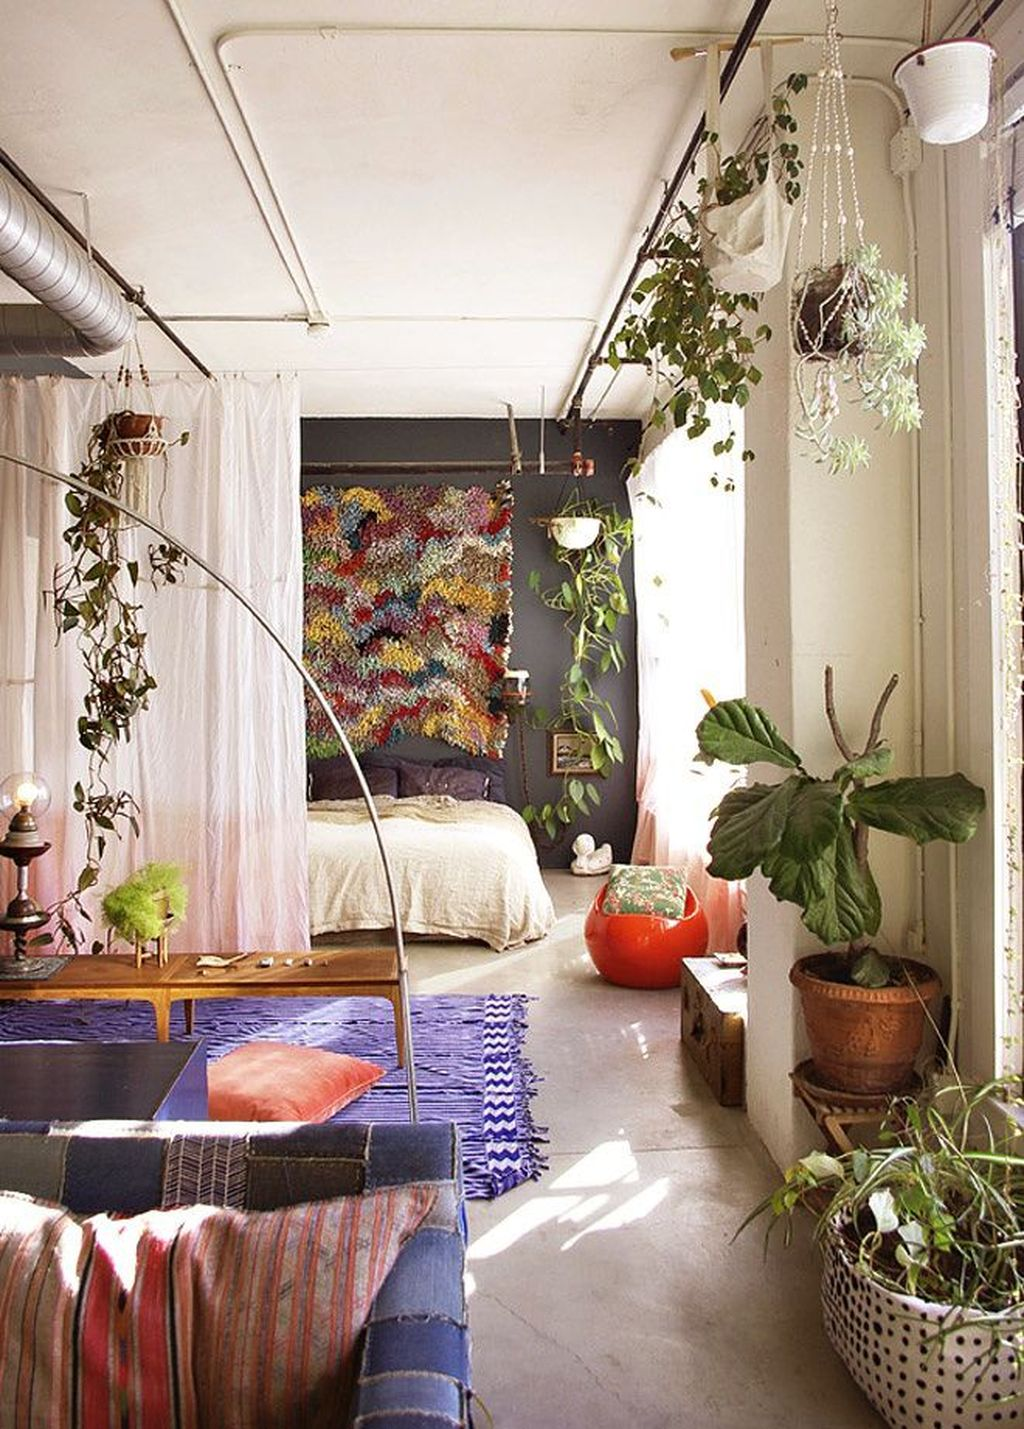 Cool Studio Apartment Ideas You Never Seen Before 05